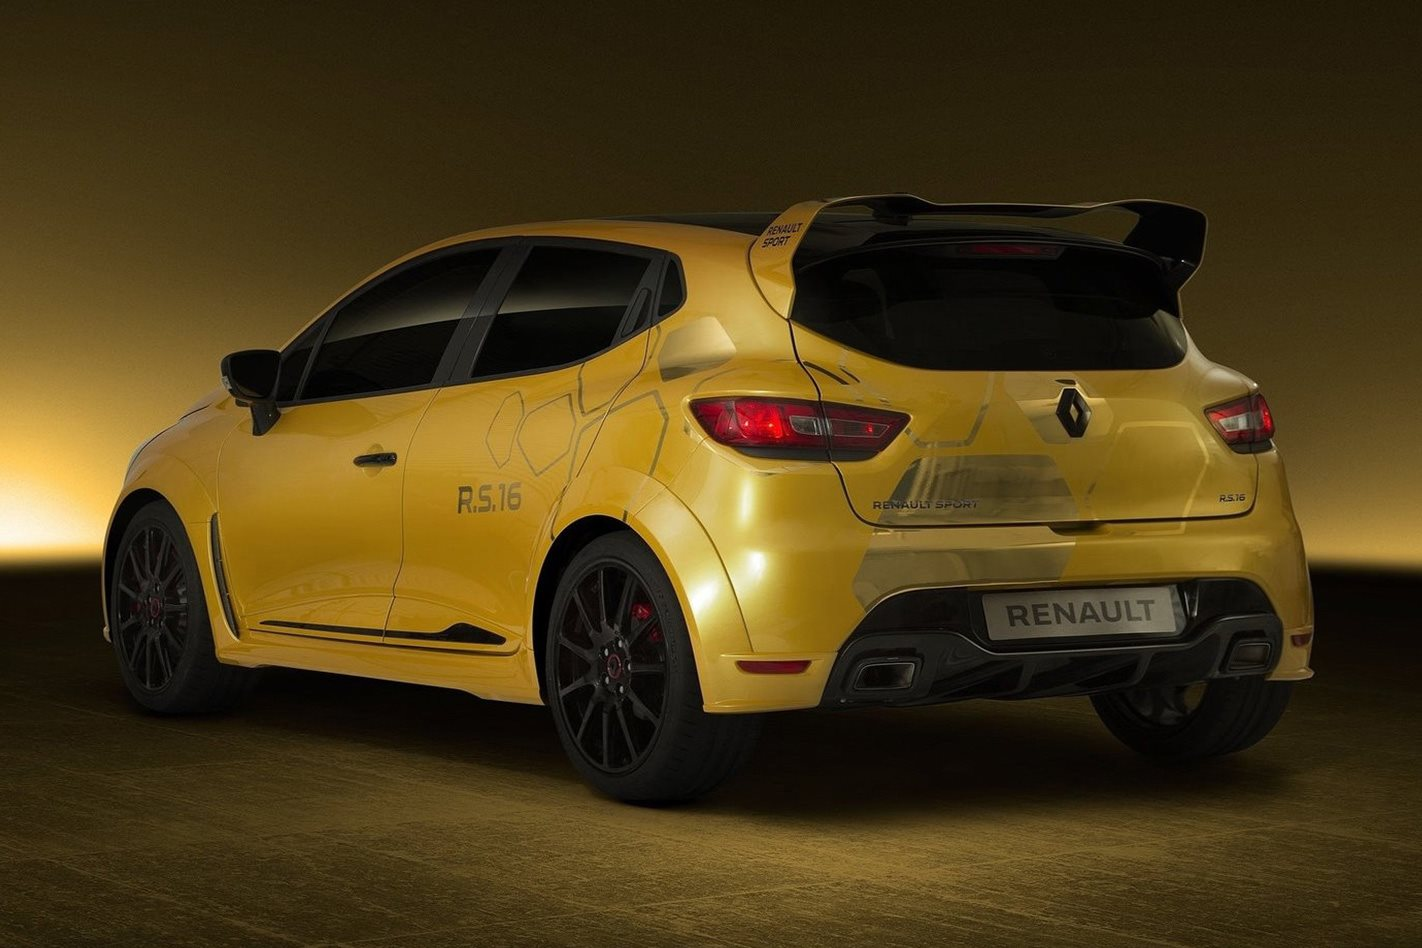 renault 39 s clio rs16 bumped for cayman fighter motor. Black Bedroom Furniture Sets. Home Design Ideas